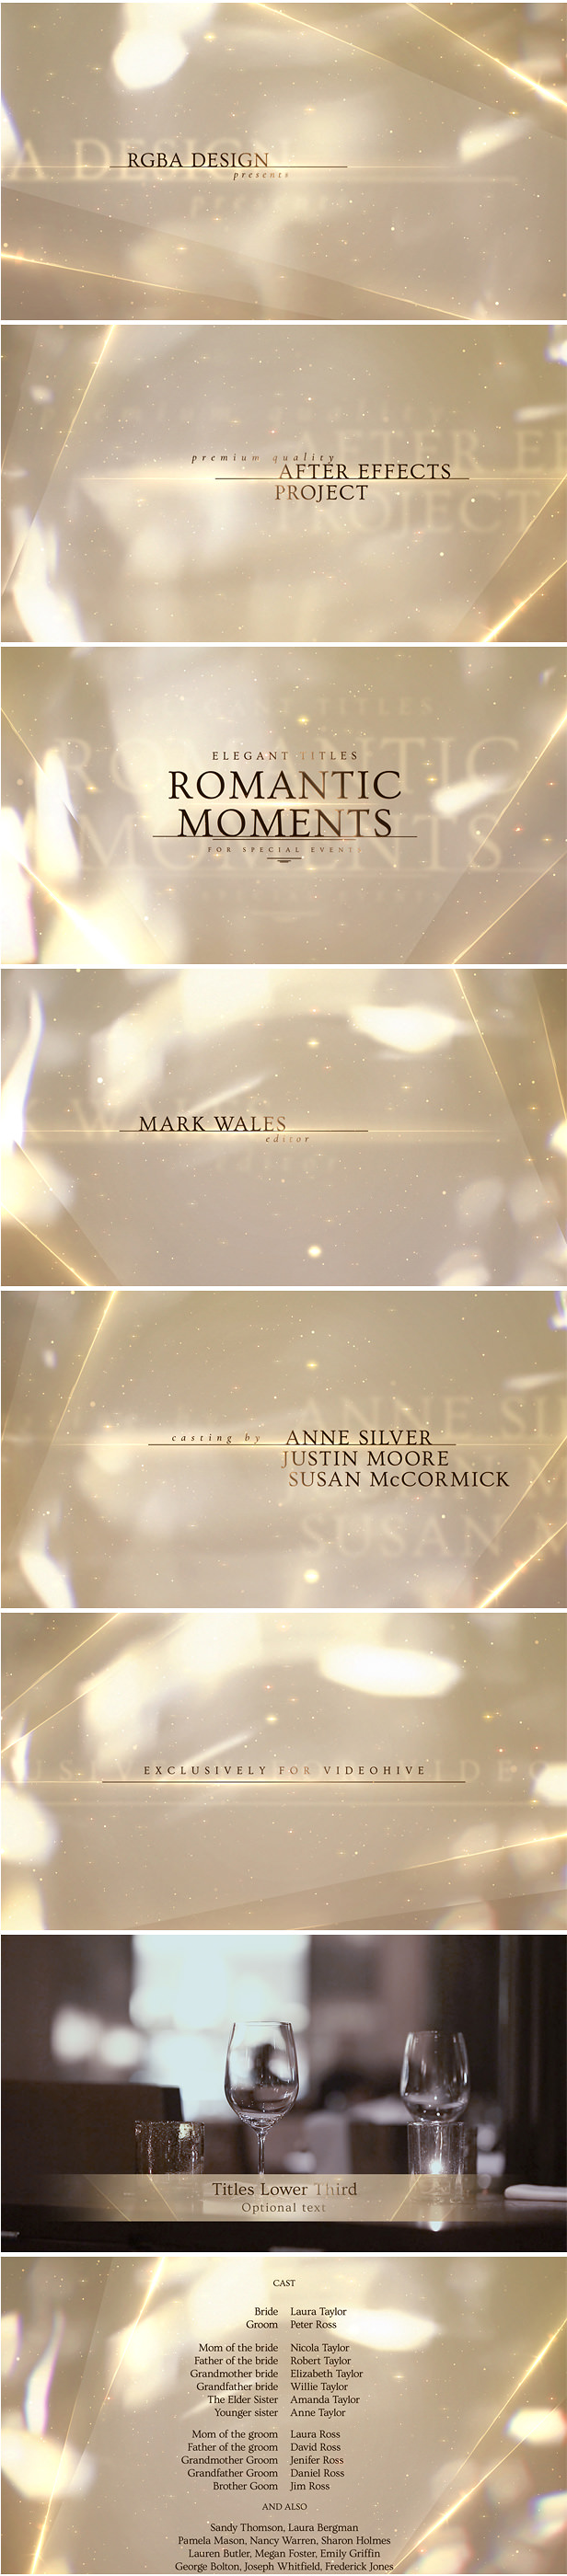 Elegant White Titles After Effects Template with golden bokeh lights and shimmering particles, perfect for majestic wedding film & beautiful love story